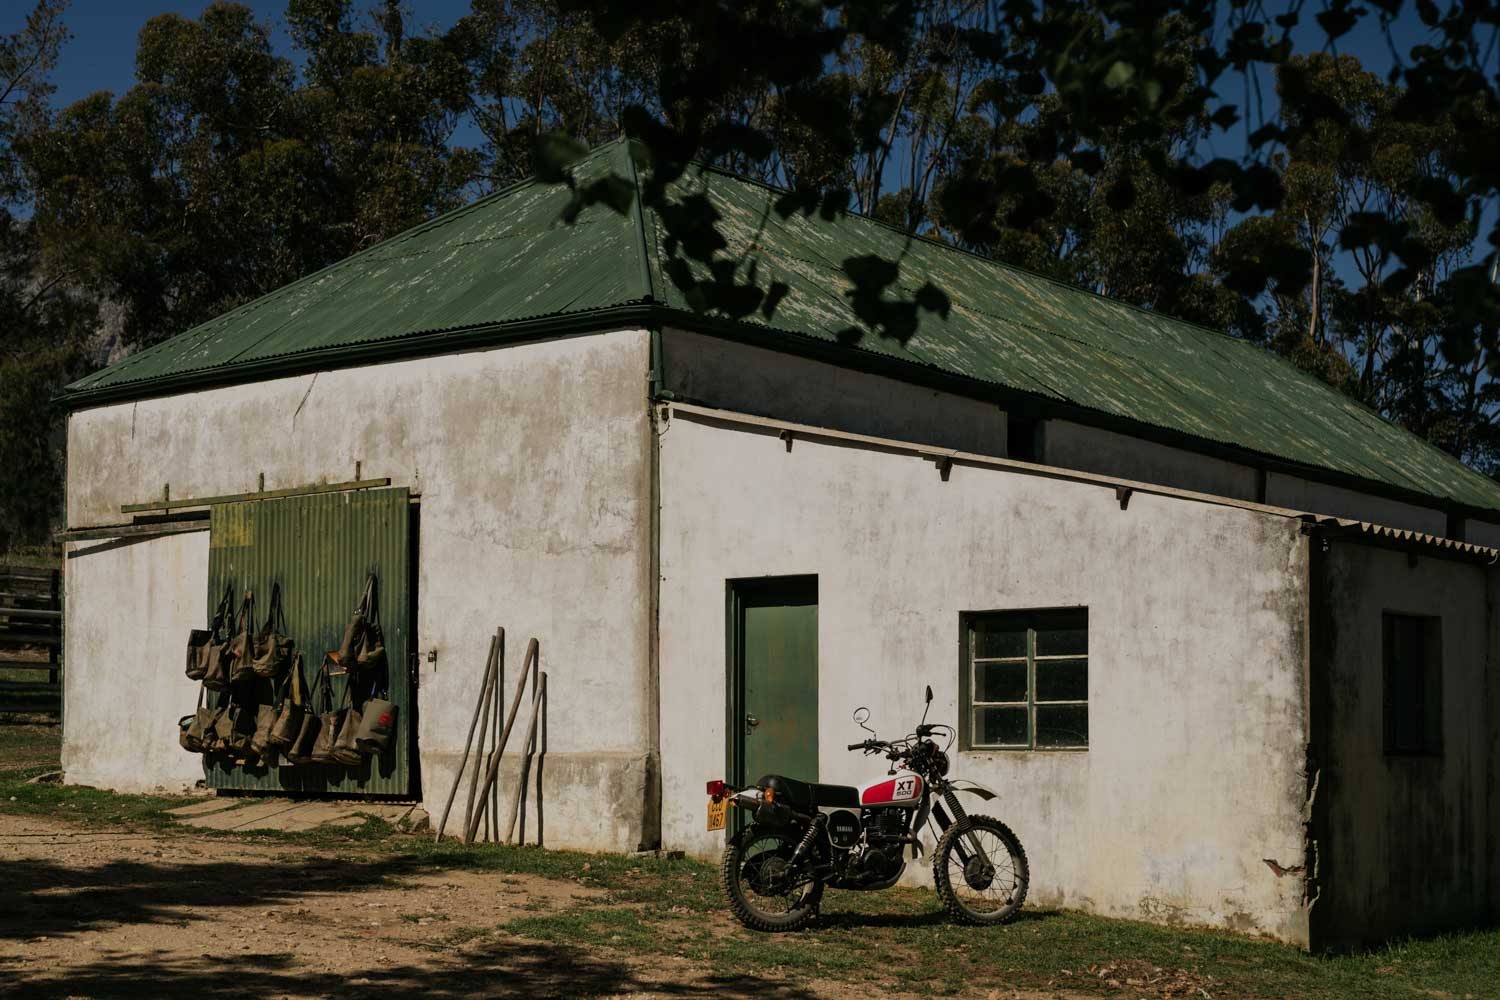 An old white farm shed with green doors and roof with motor bike outside